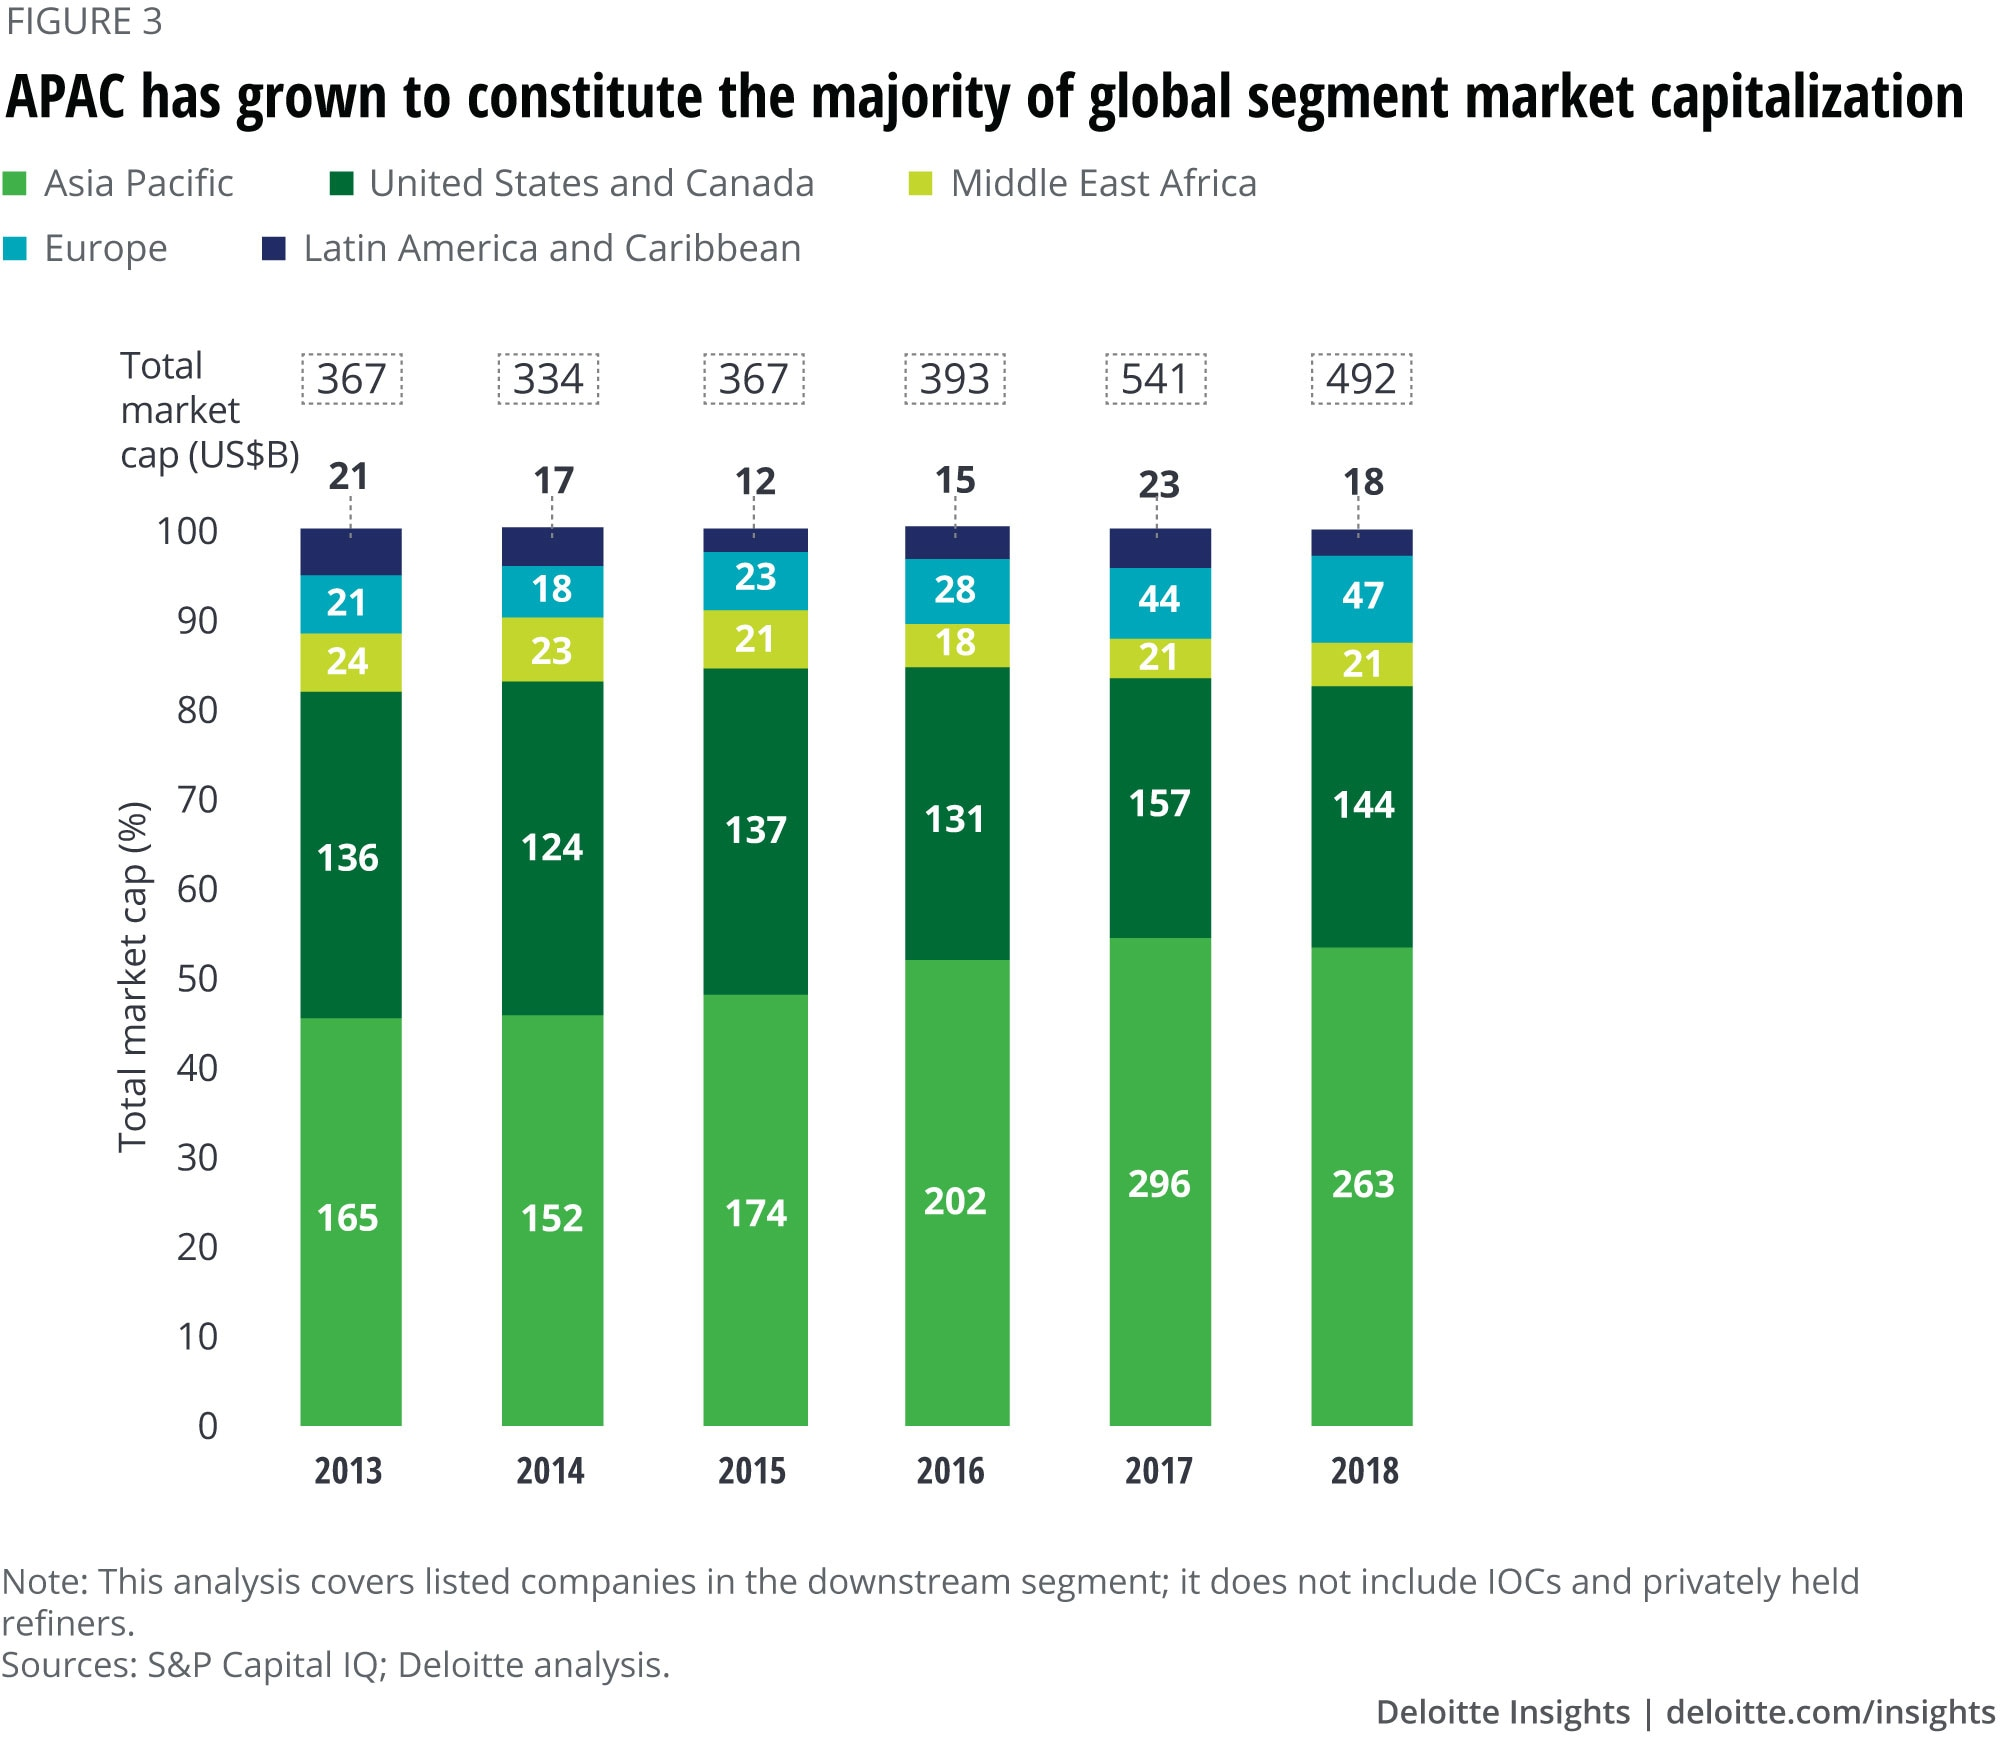 APAC has grown to constitute the majority of global segment market capitalization